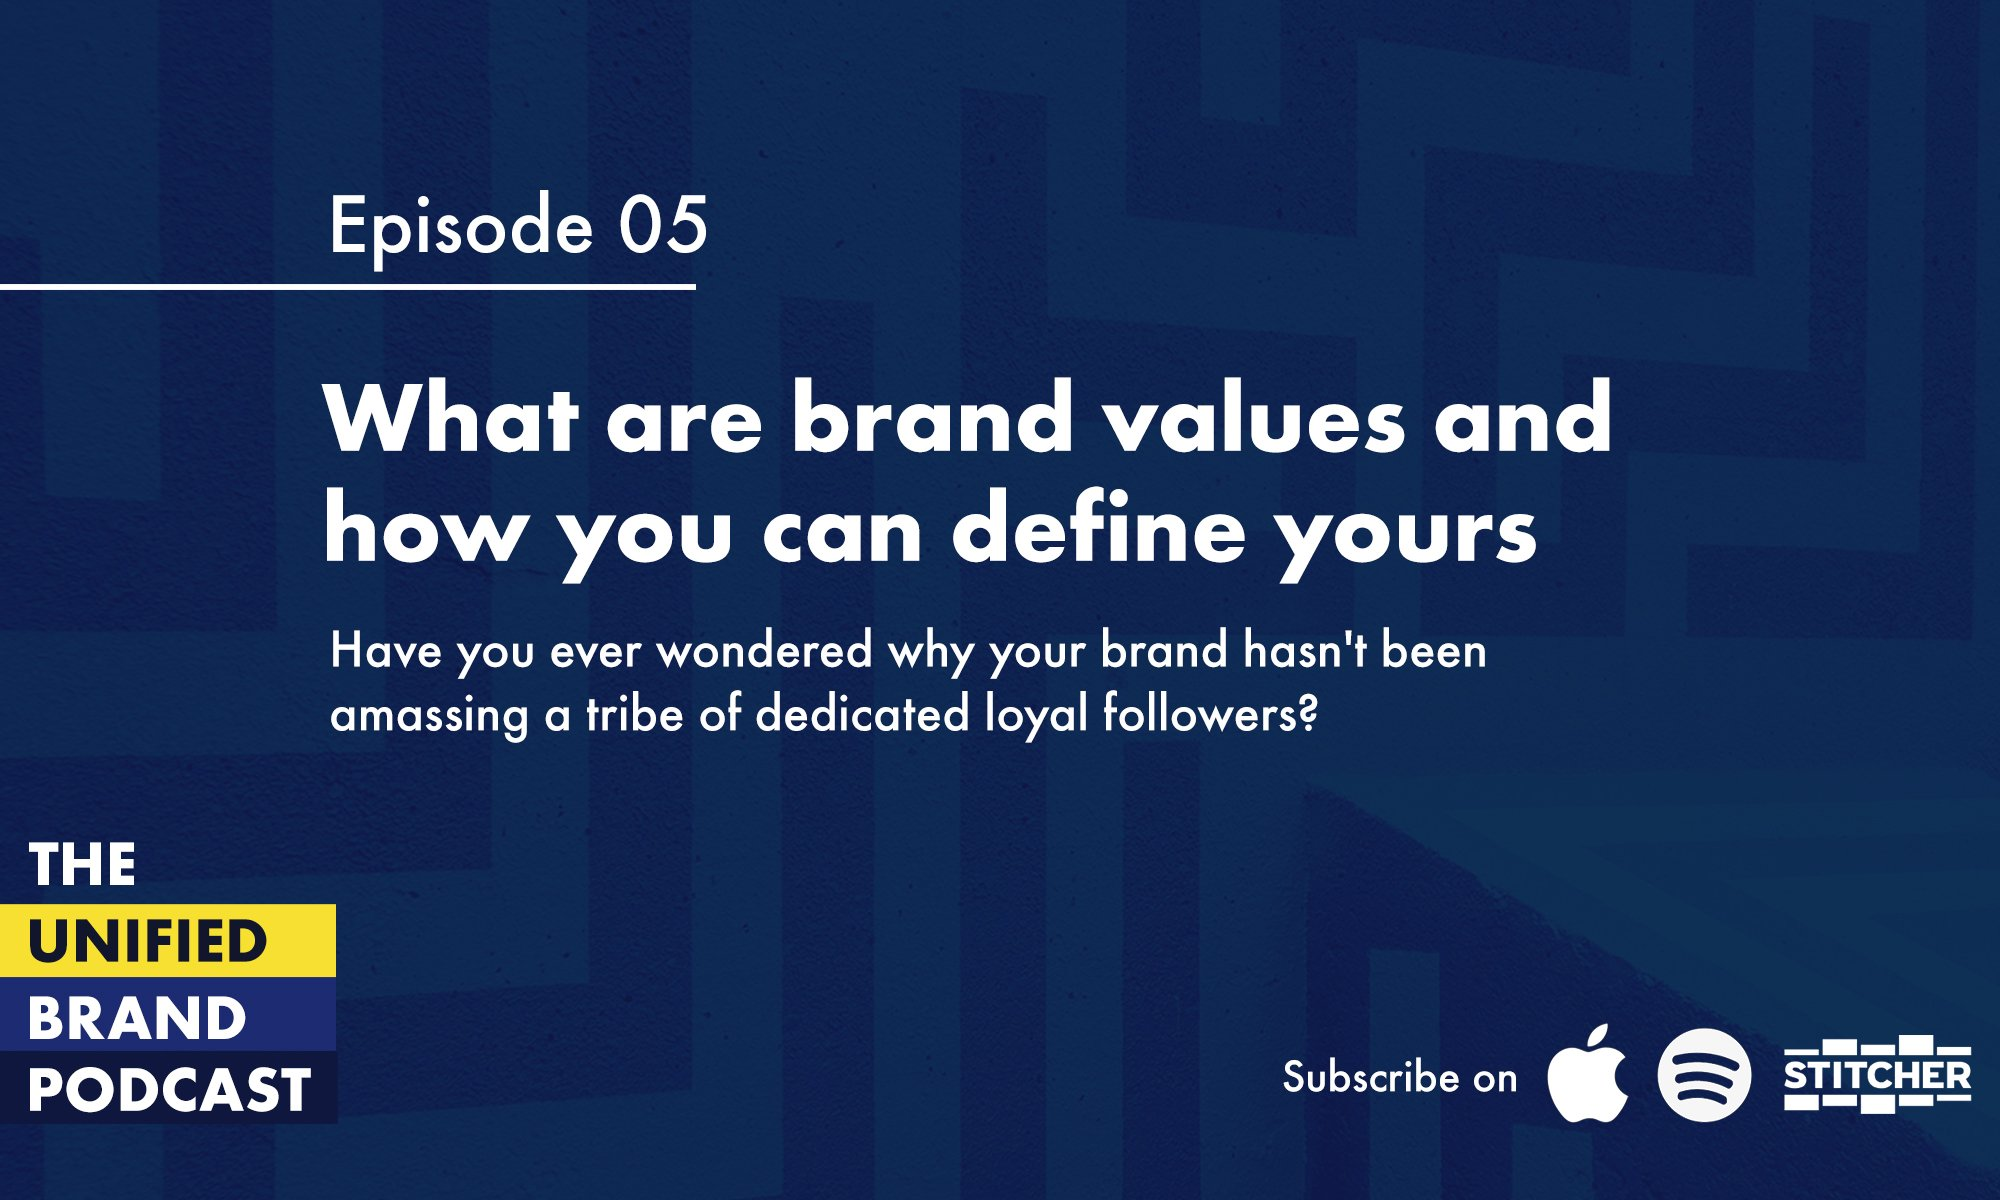 What are brand values and how you can define yours